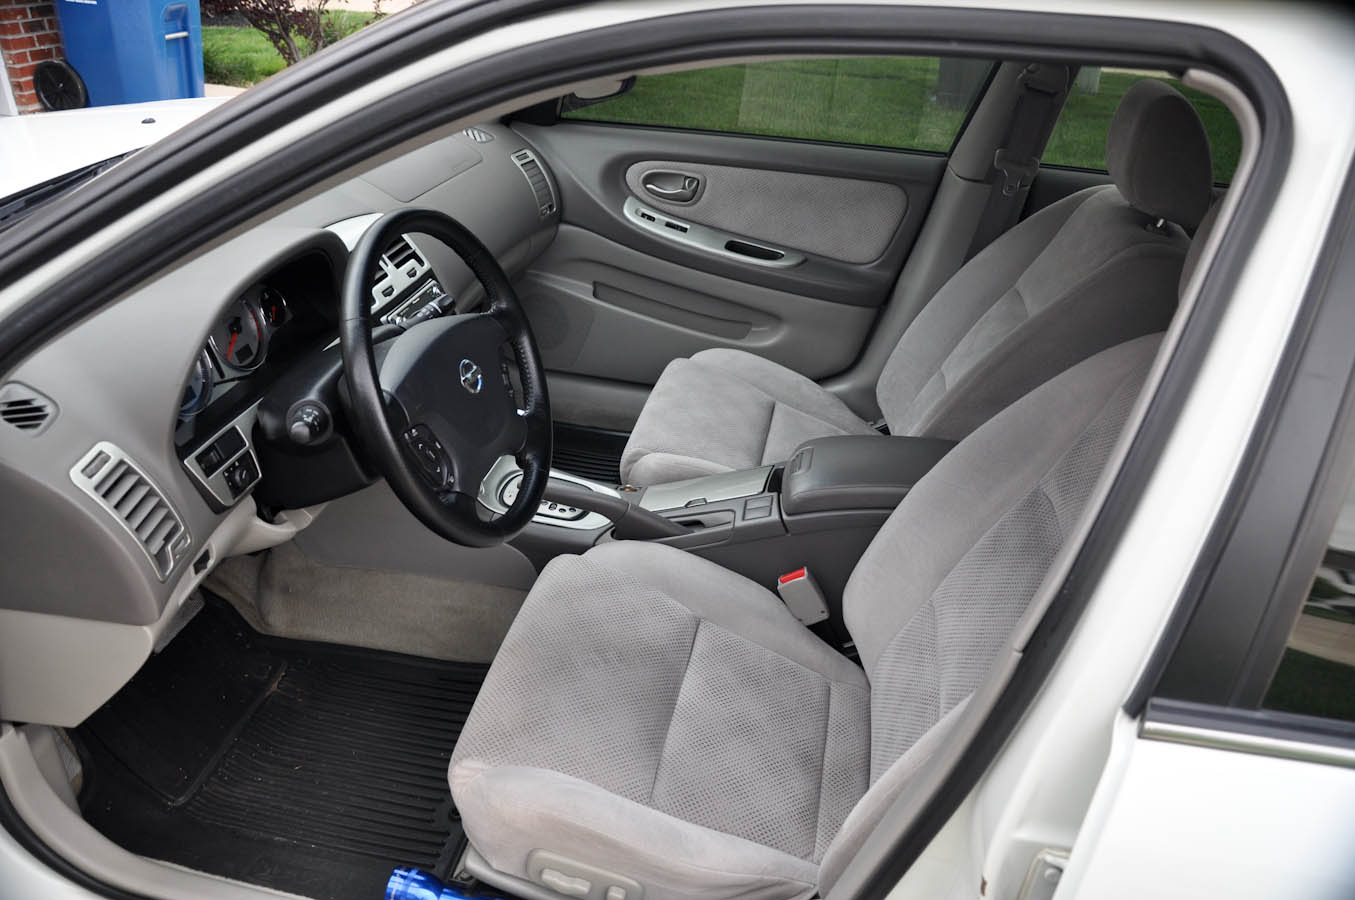 2002 nissan maxima interior images hd cars wallpaper 2002 nissan maxima fs 7200 attached images vanachro images vanachro Images